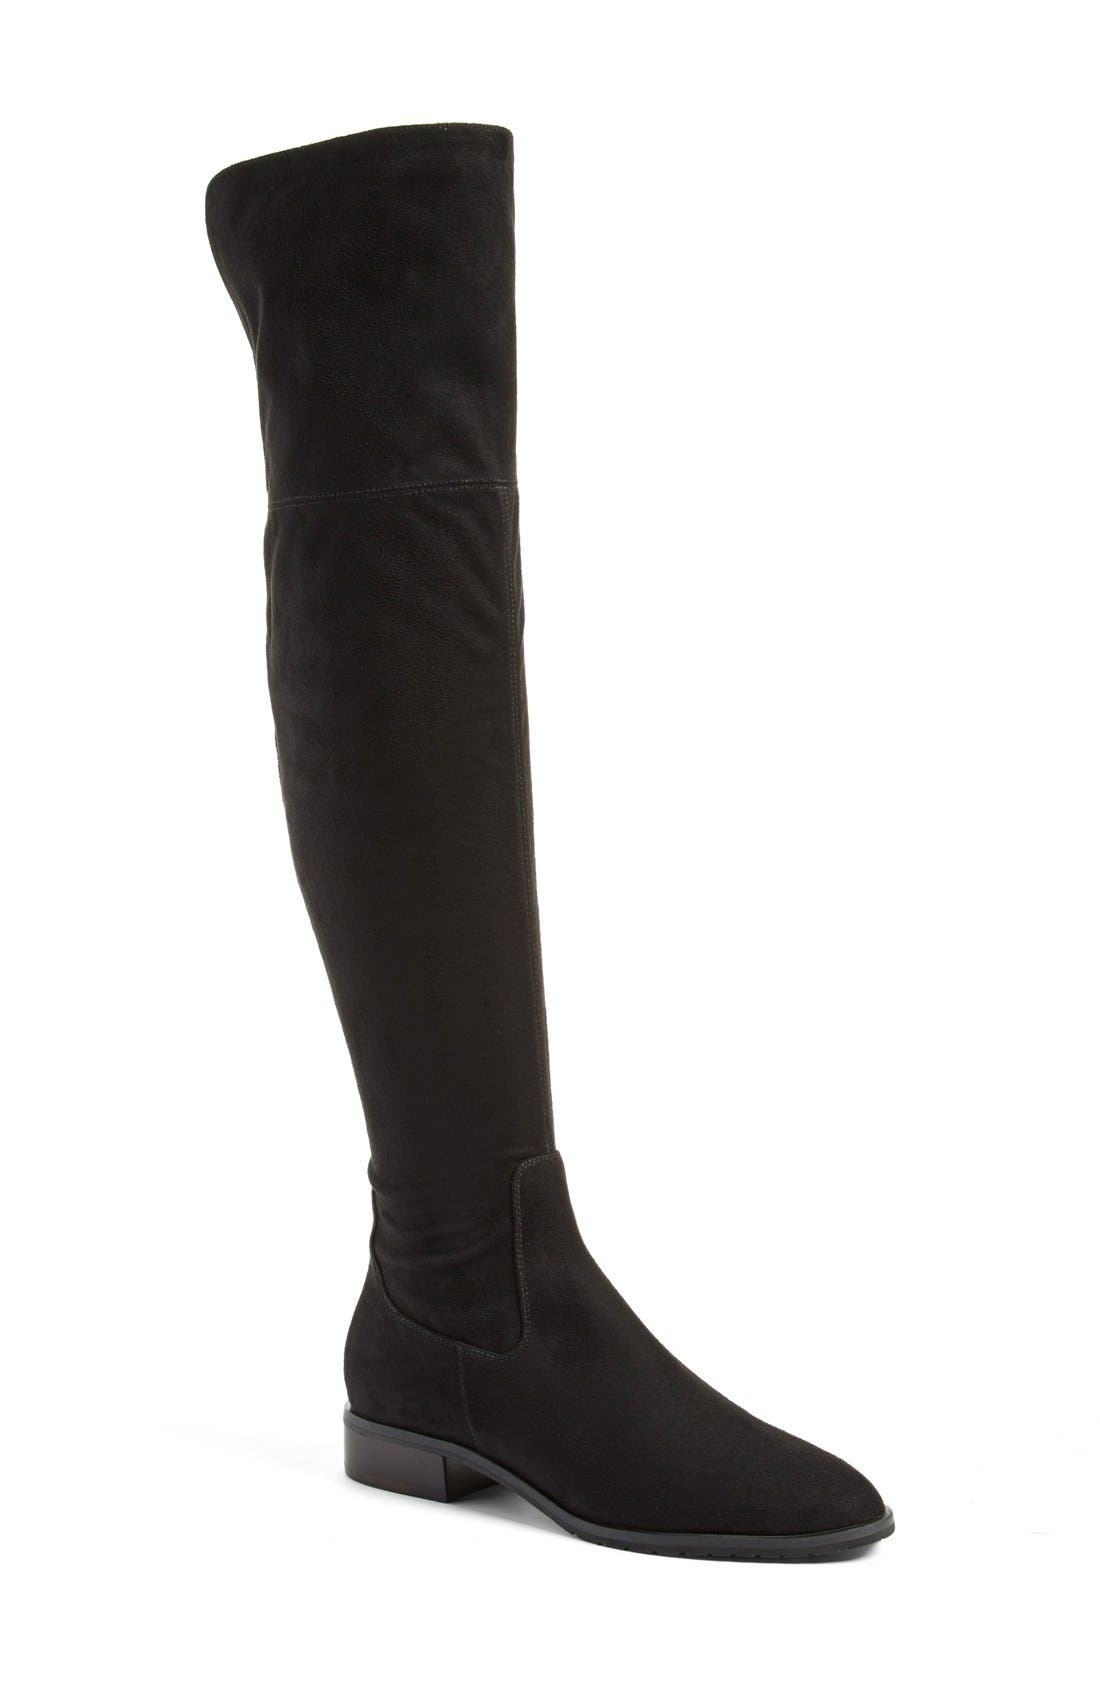 IVANKA TRUMP 'Luci' Over the Knee Boot, Main, color, 001